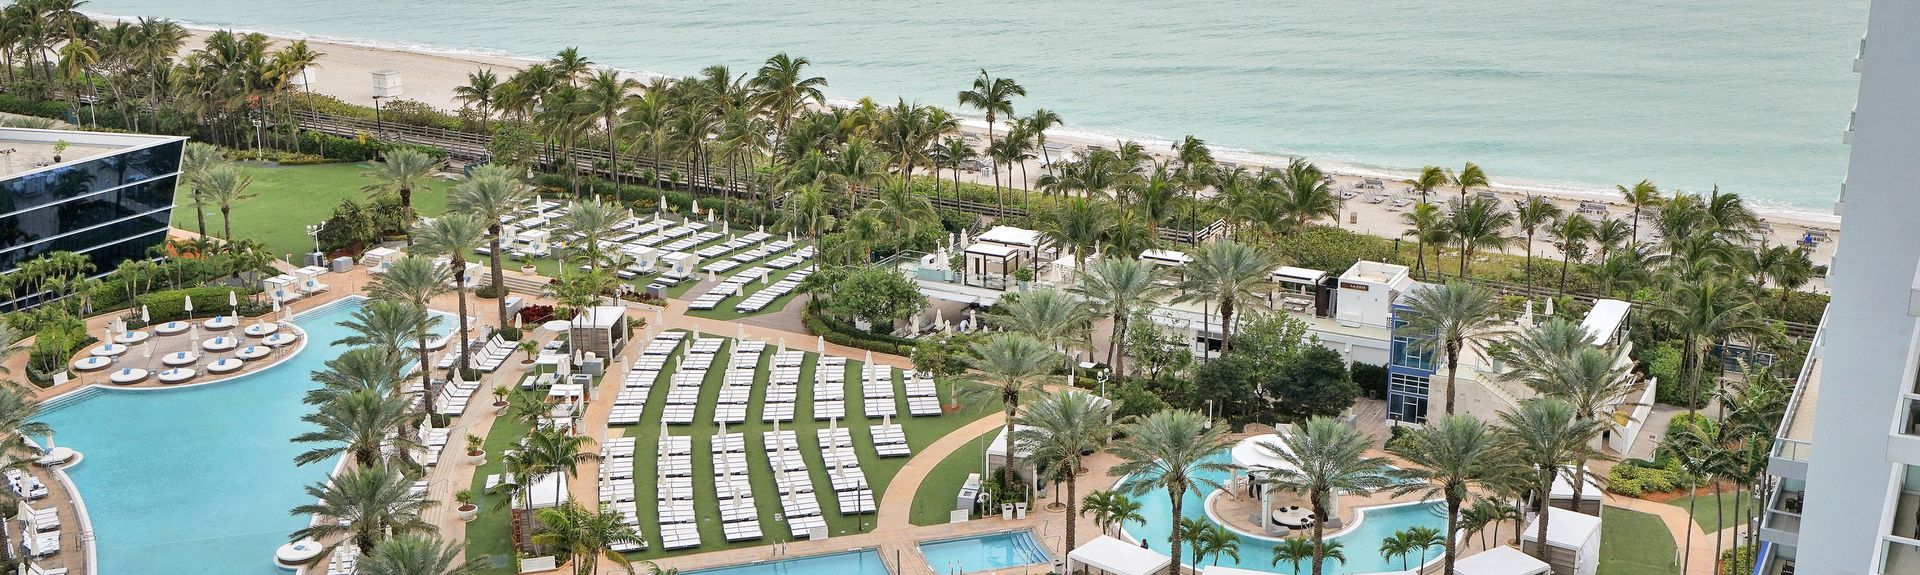 Fontainebleau Resort, Miami Beach, FL, USA